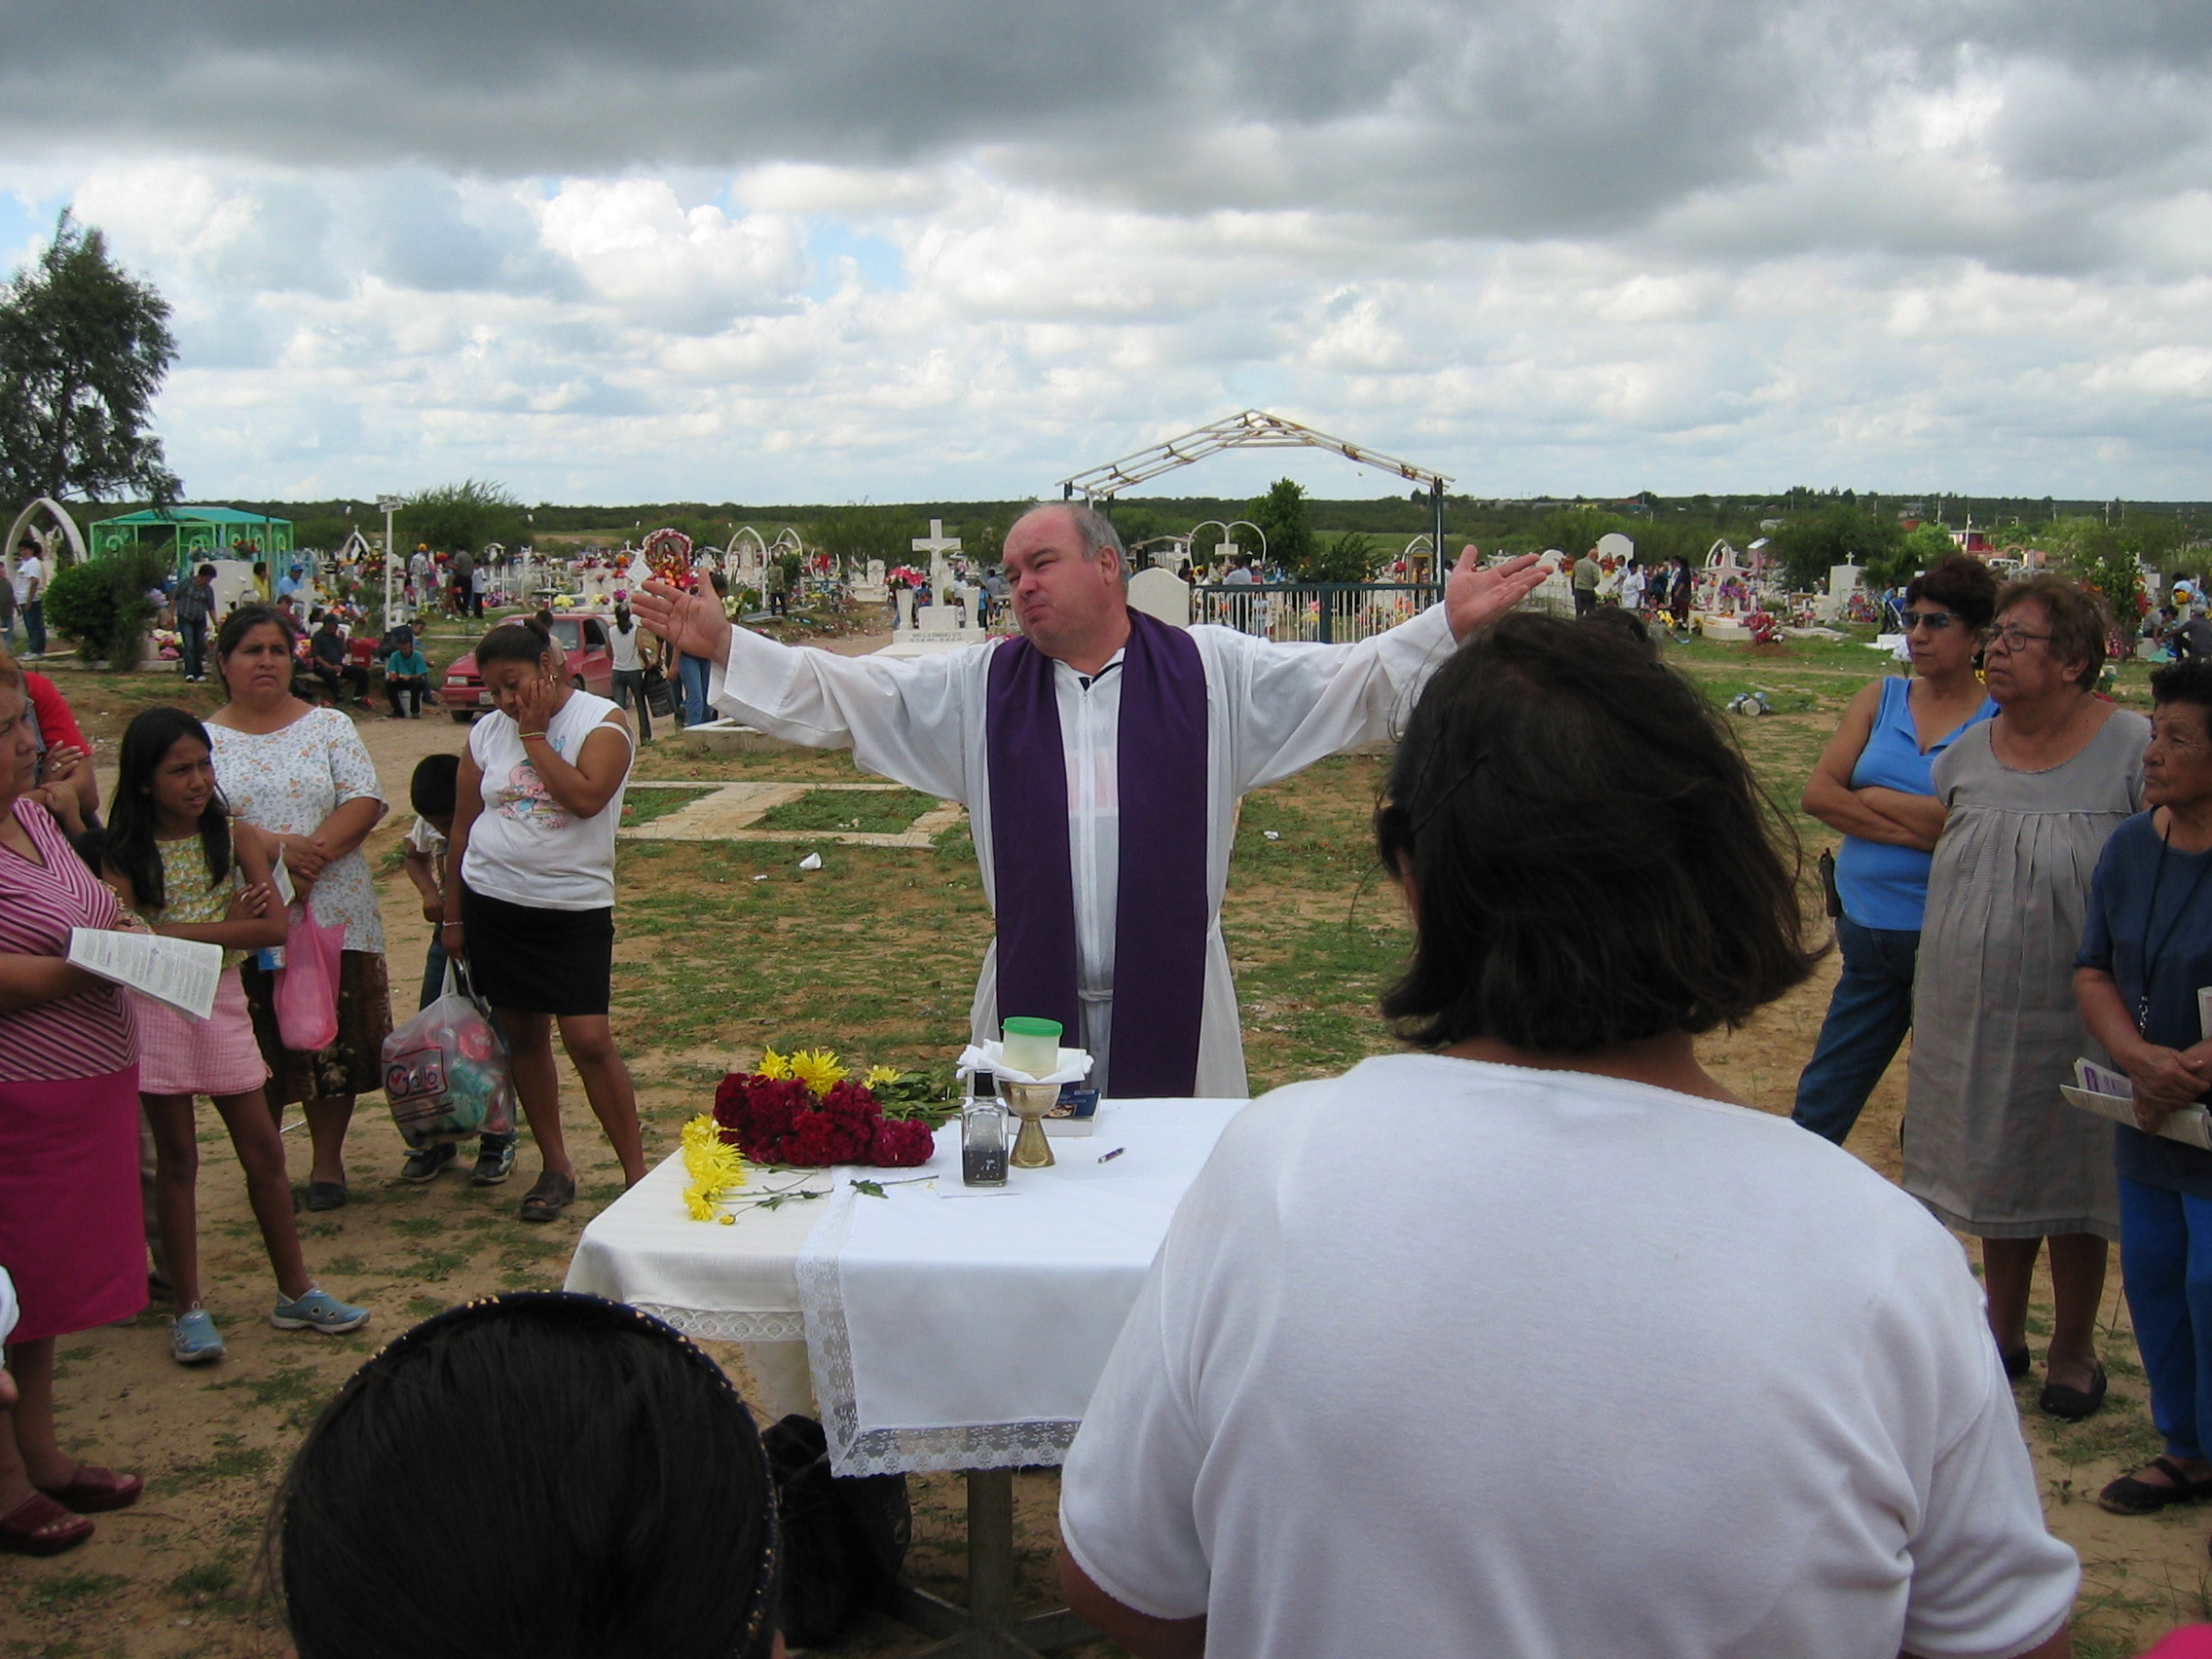 On the Day of the Dead in 2003, Father Leonardo López Guajardo says mass at the Nuevo Laredo cemetery. He also led a prayer for migrants buried in a common grave.